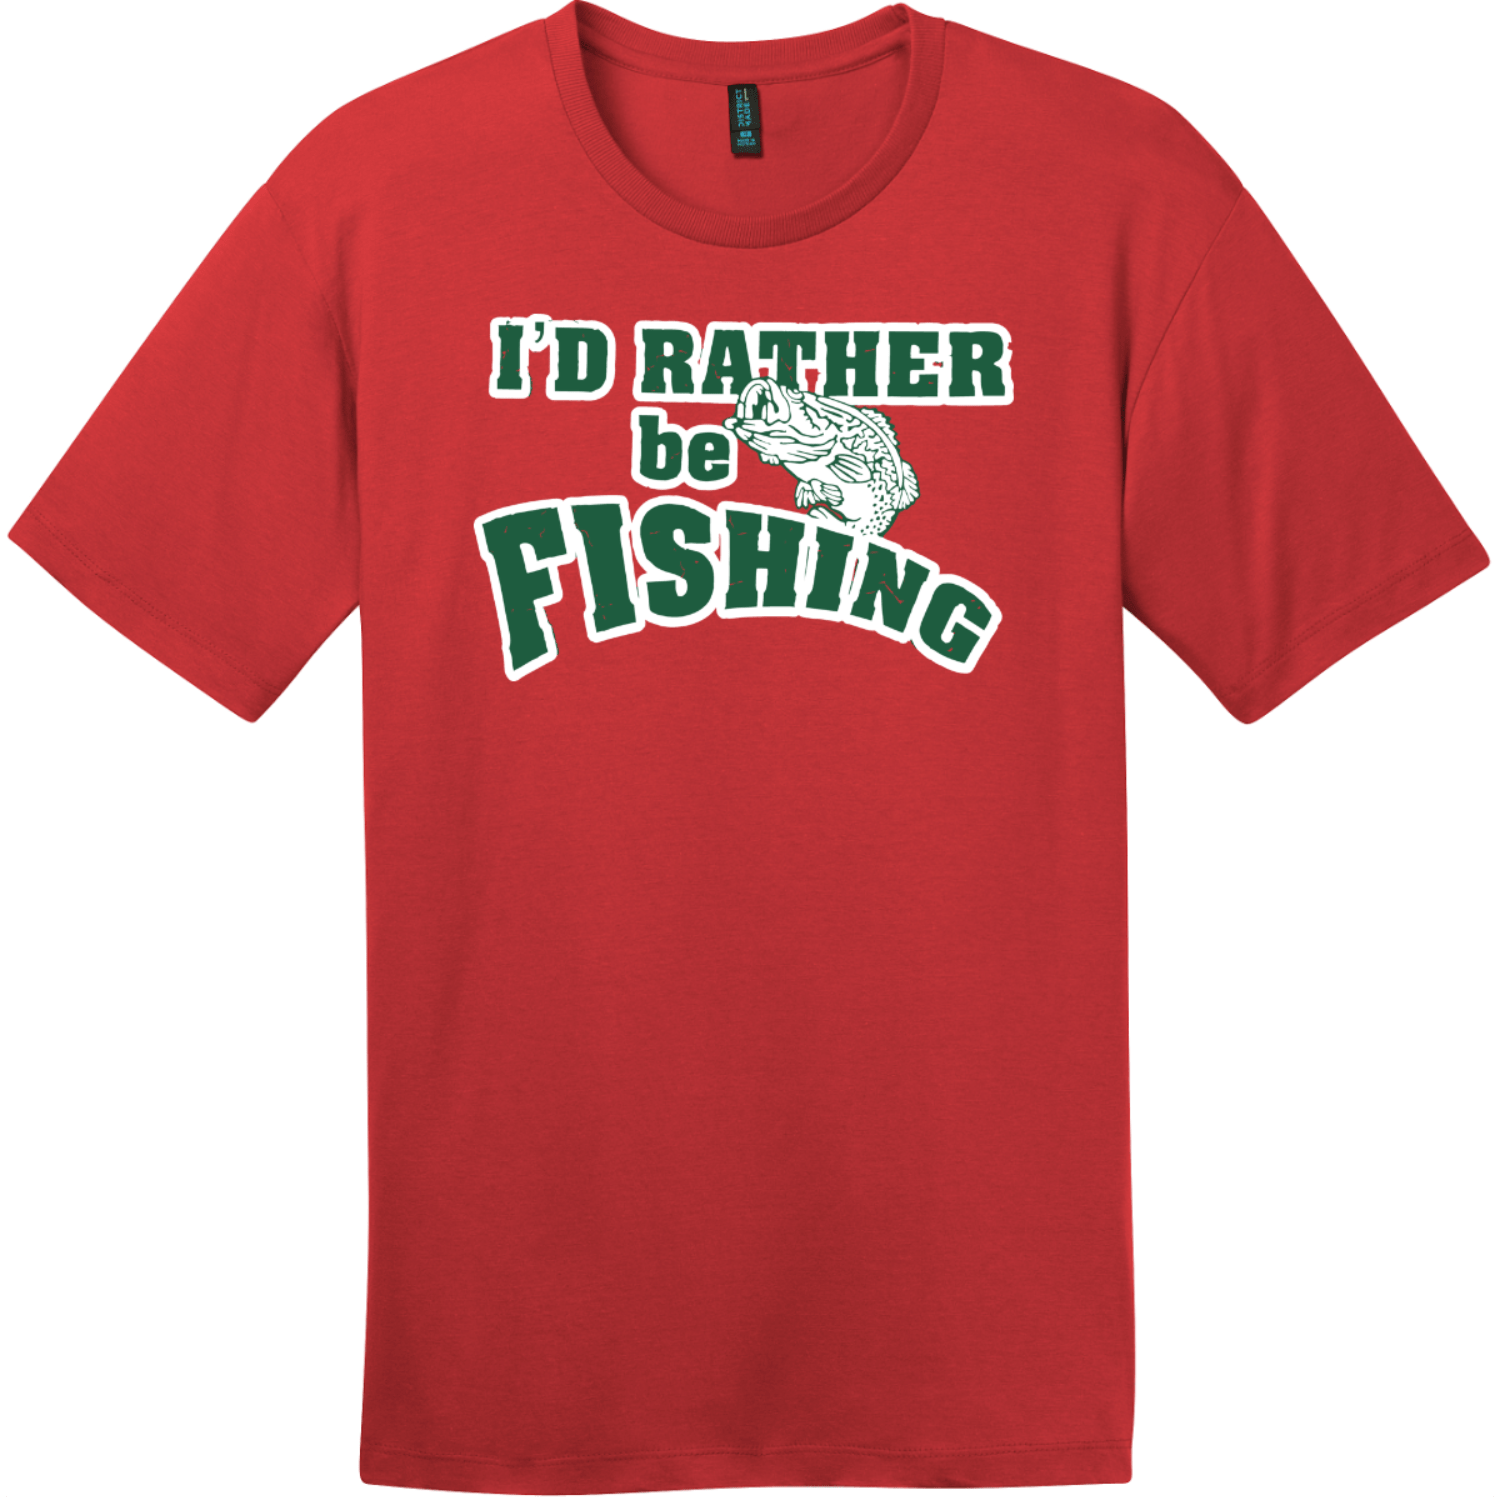 I'd Rather Be Fishing T-Shirt Classic Red District Perfect Weight Tee DT104